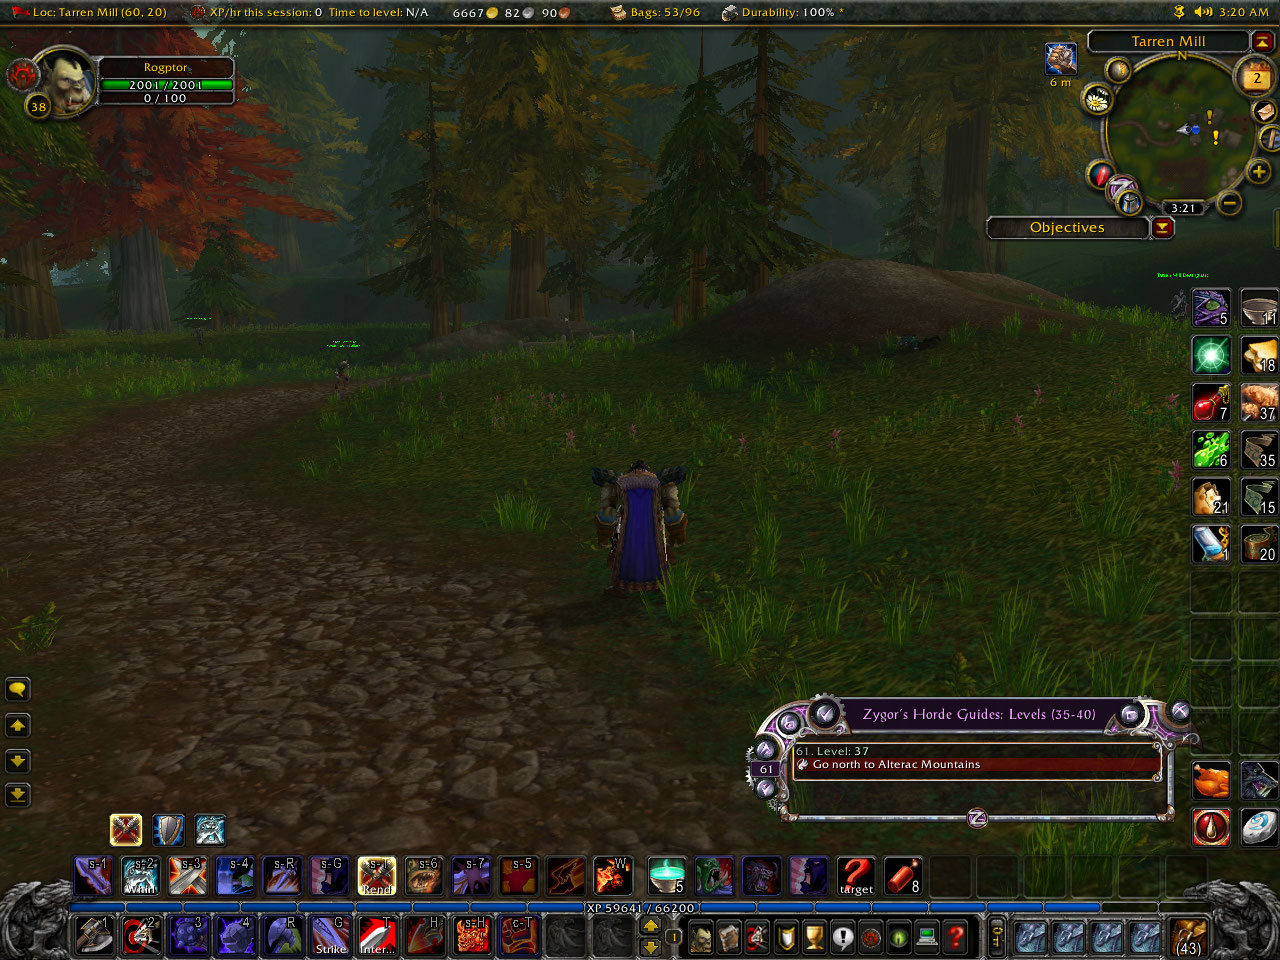 Calaméo zygors leveling guide the best wow leveling guide?